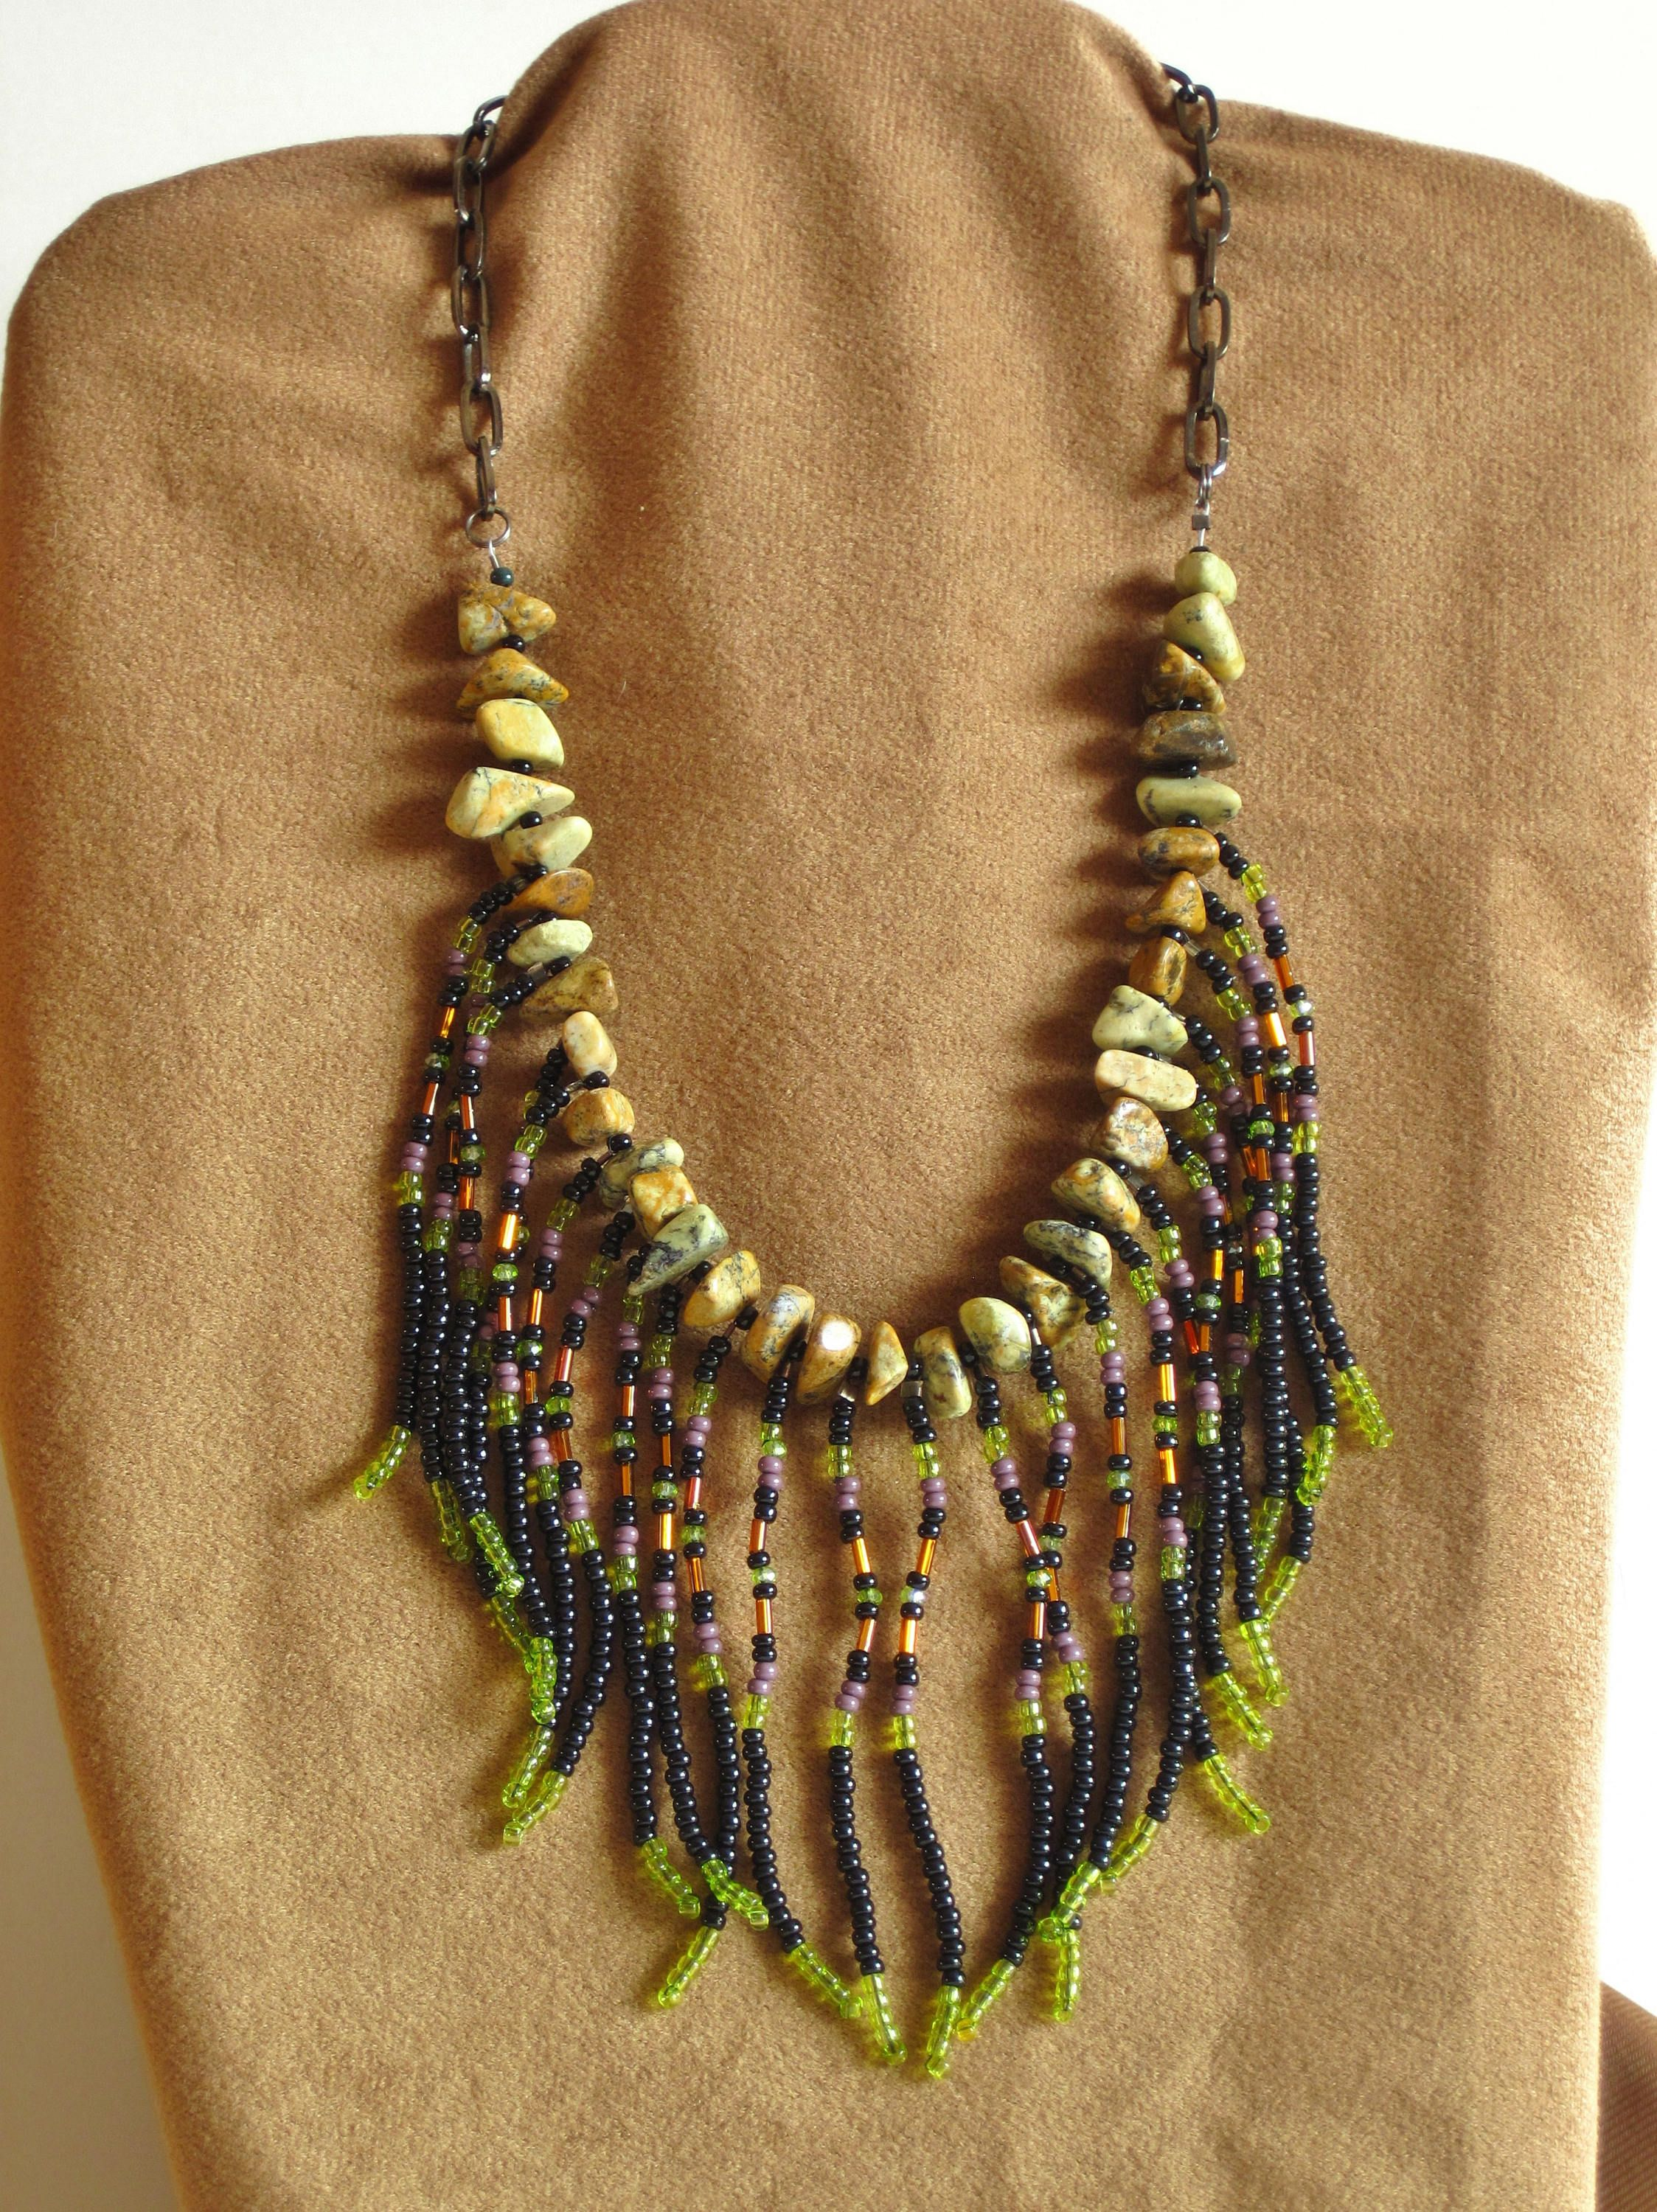 native al silver necklaces joe turquoise necklace american bead